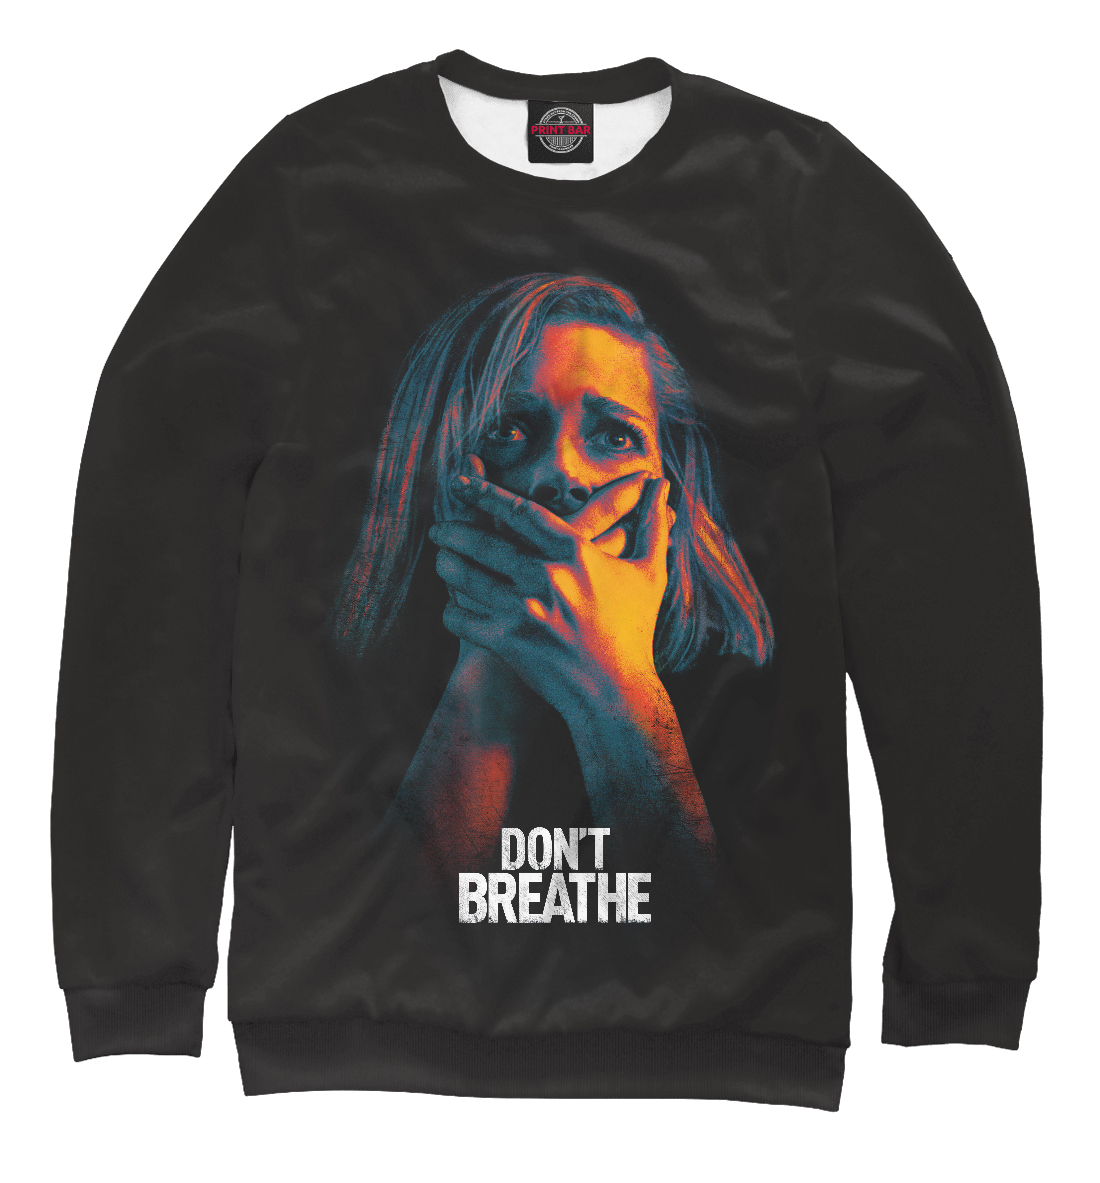 Купить DONT BREATHE, Printbar, Свитшоты, KNO-694518-swi-2